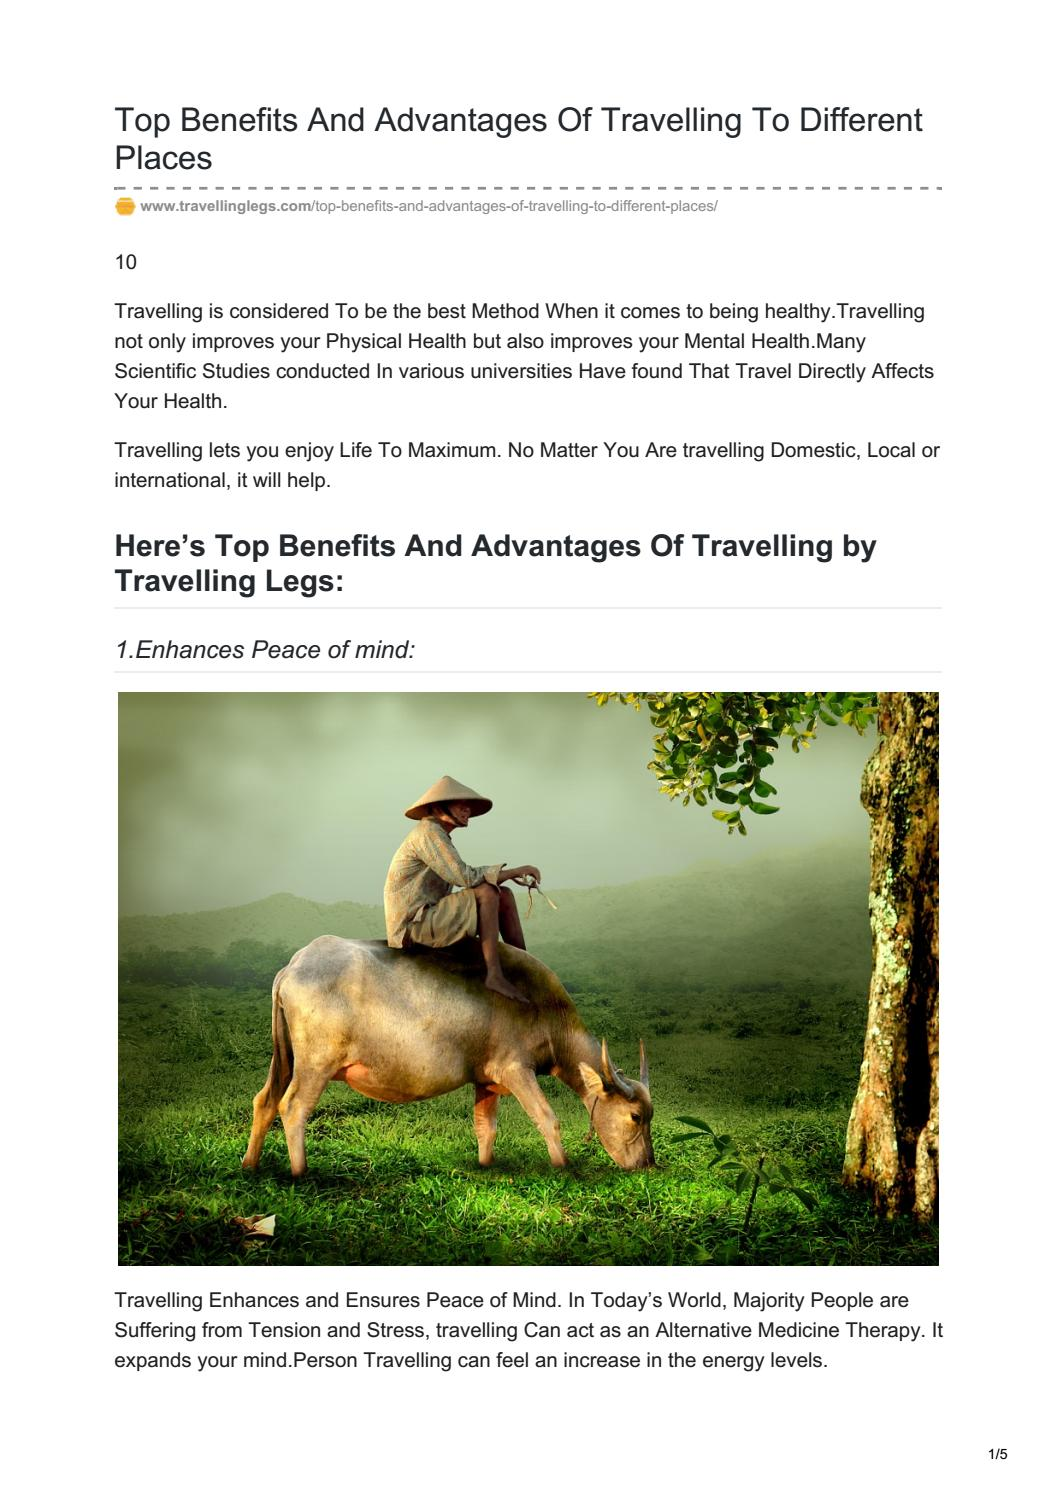 Top benefits and advantages of travelling by Travelling Legs